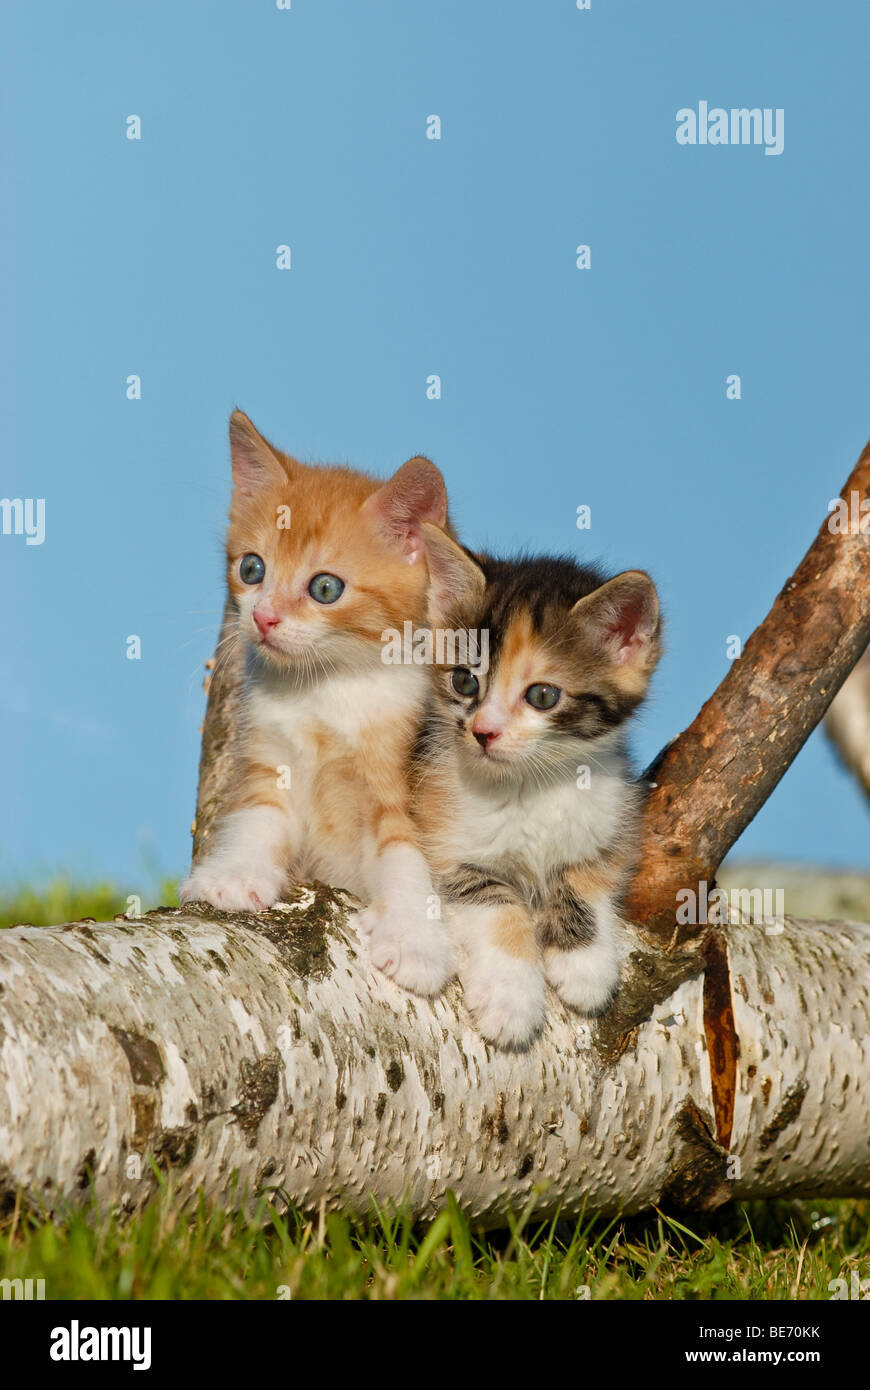 Two domestic cats, kittens climbing on a birch log Stock Photo